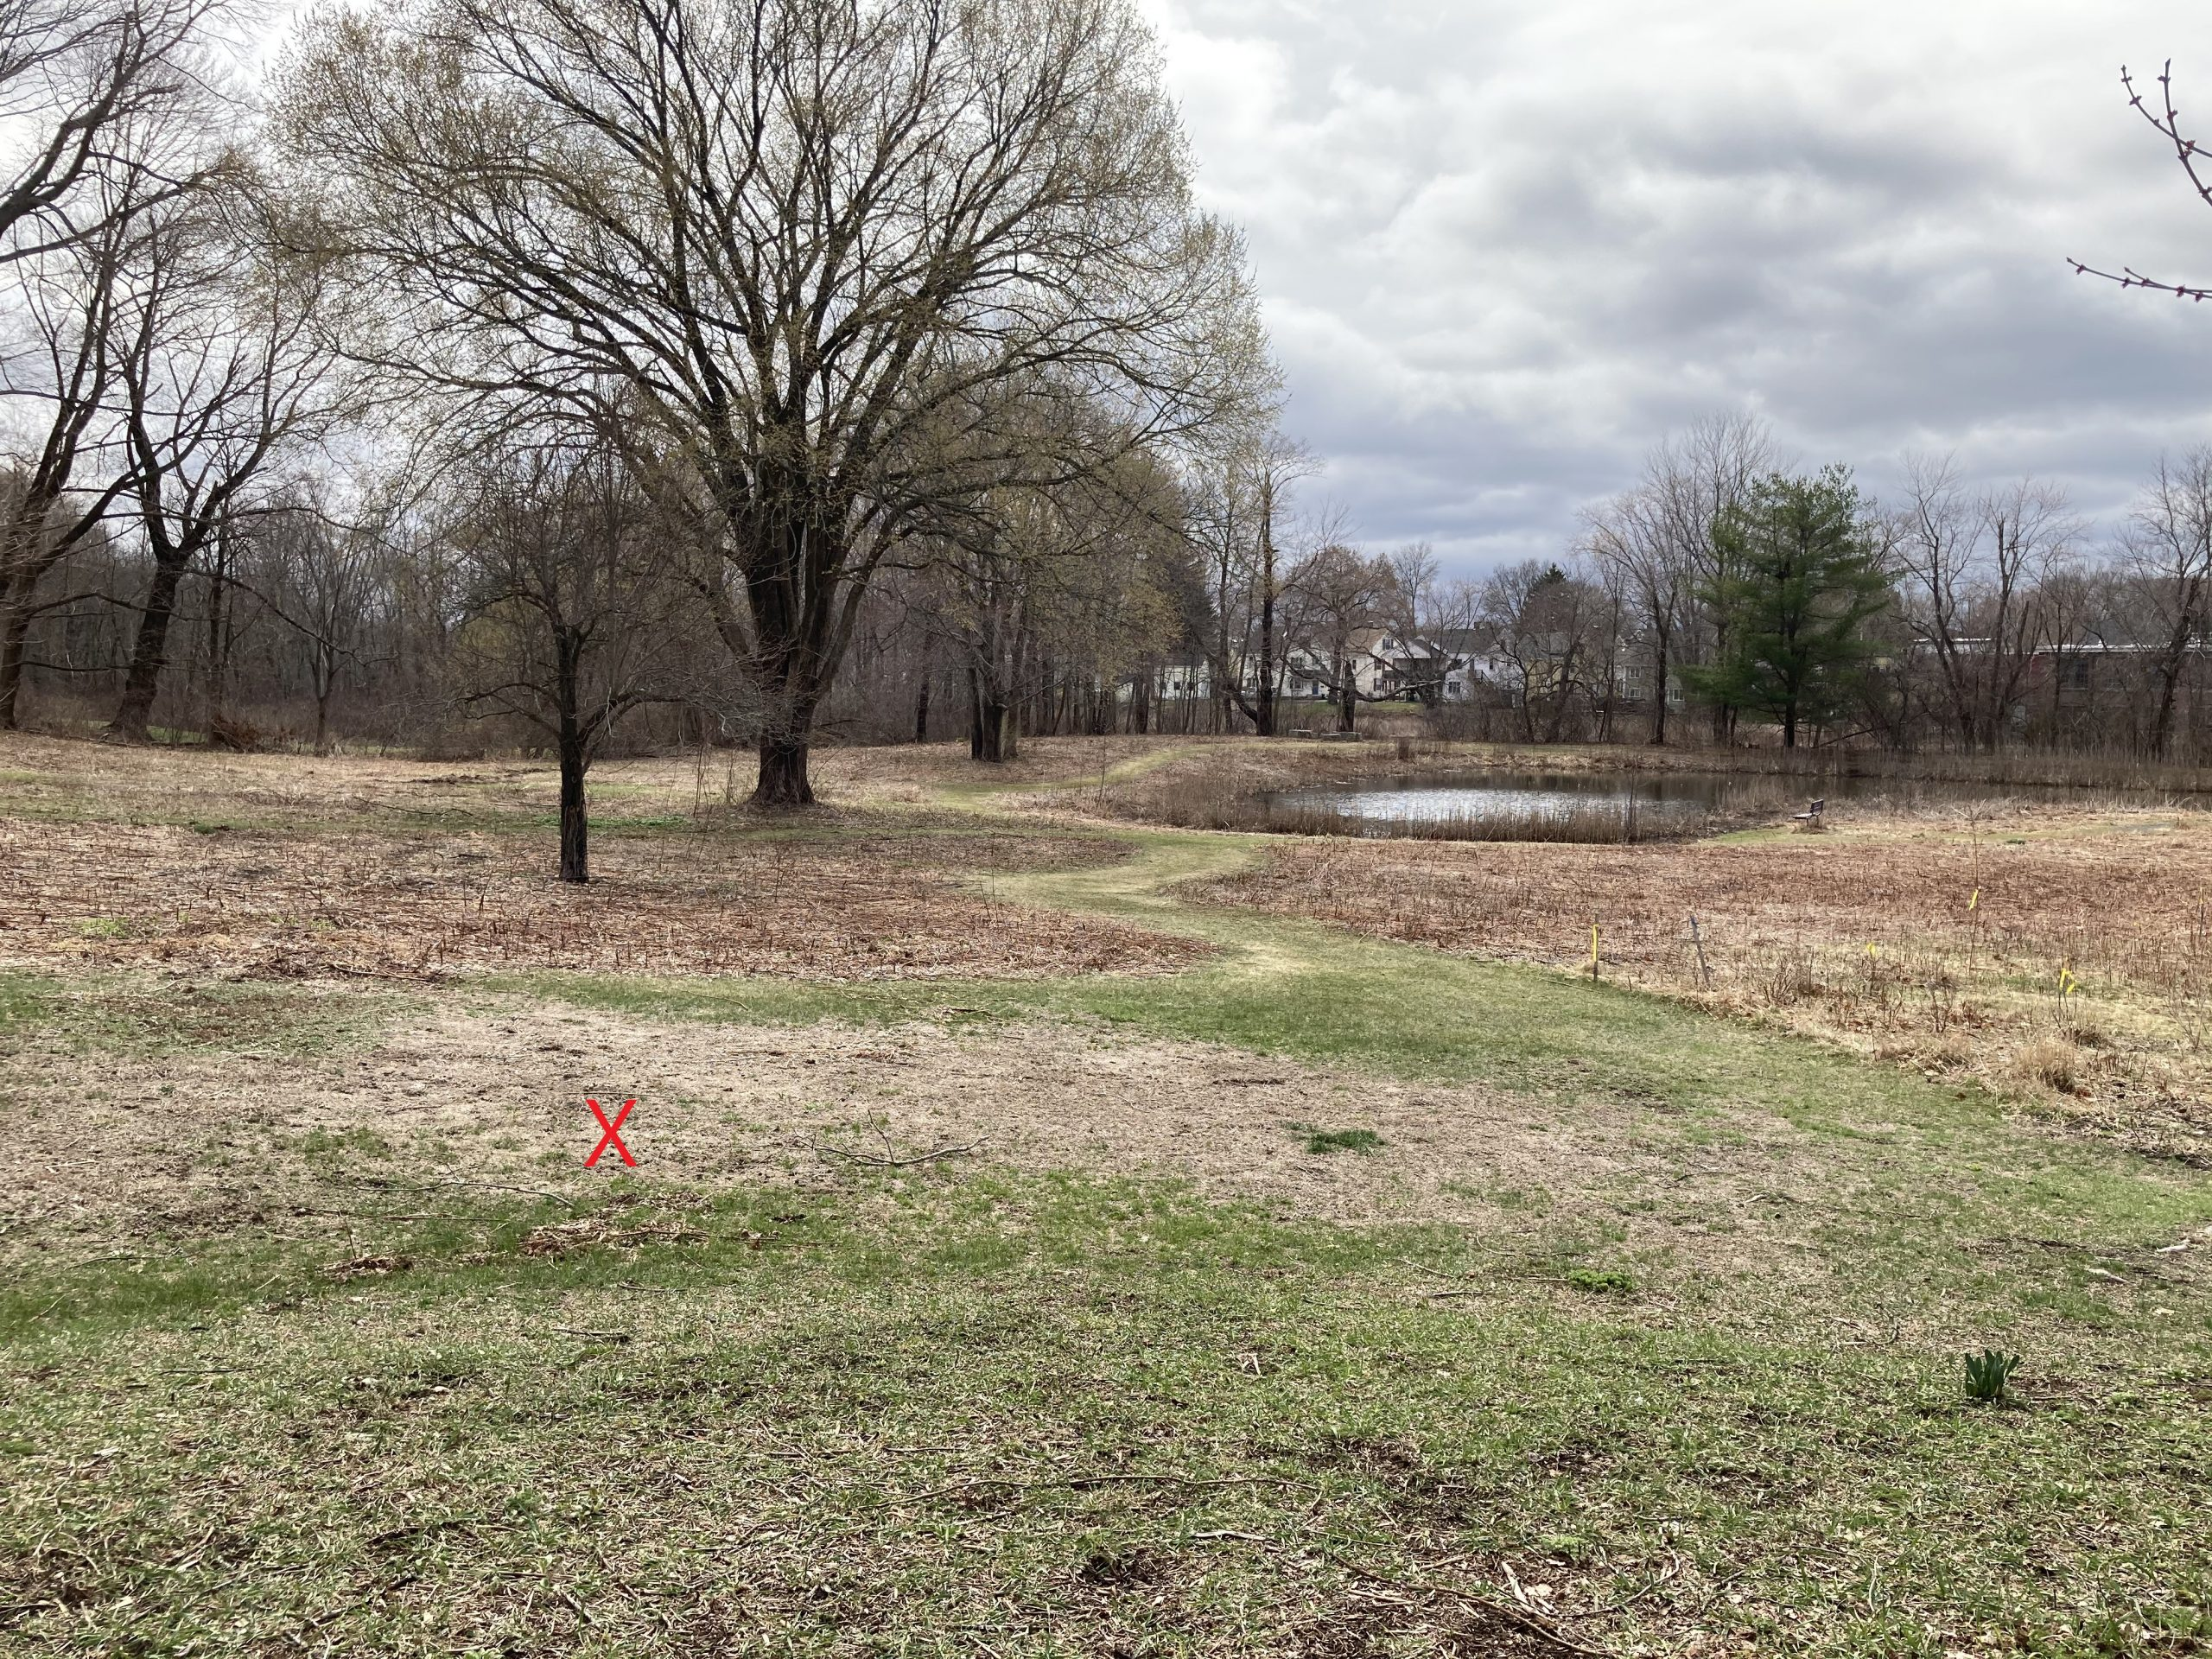 Art site marked by X facing South towards Ipswich river and Sally's pond